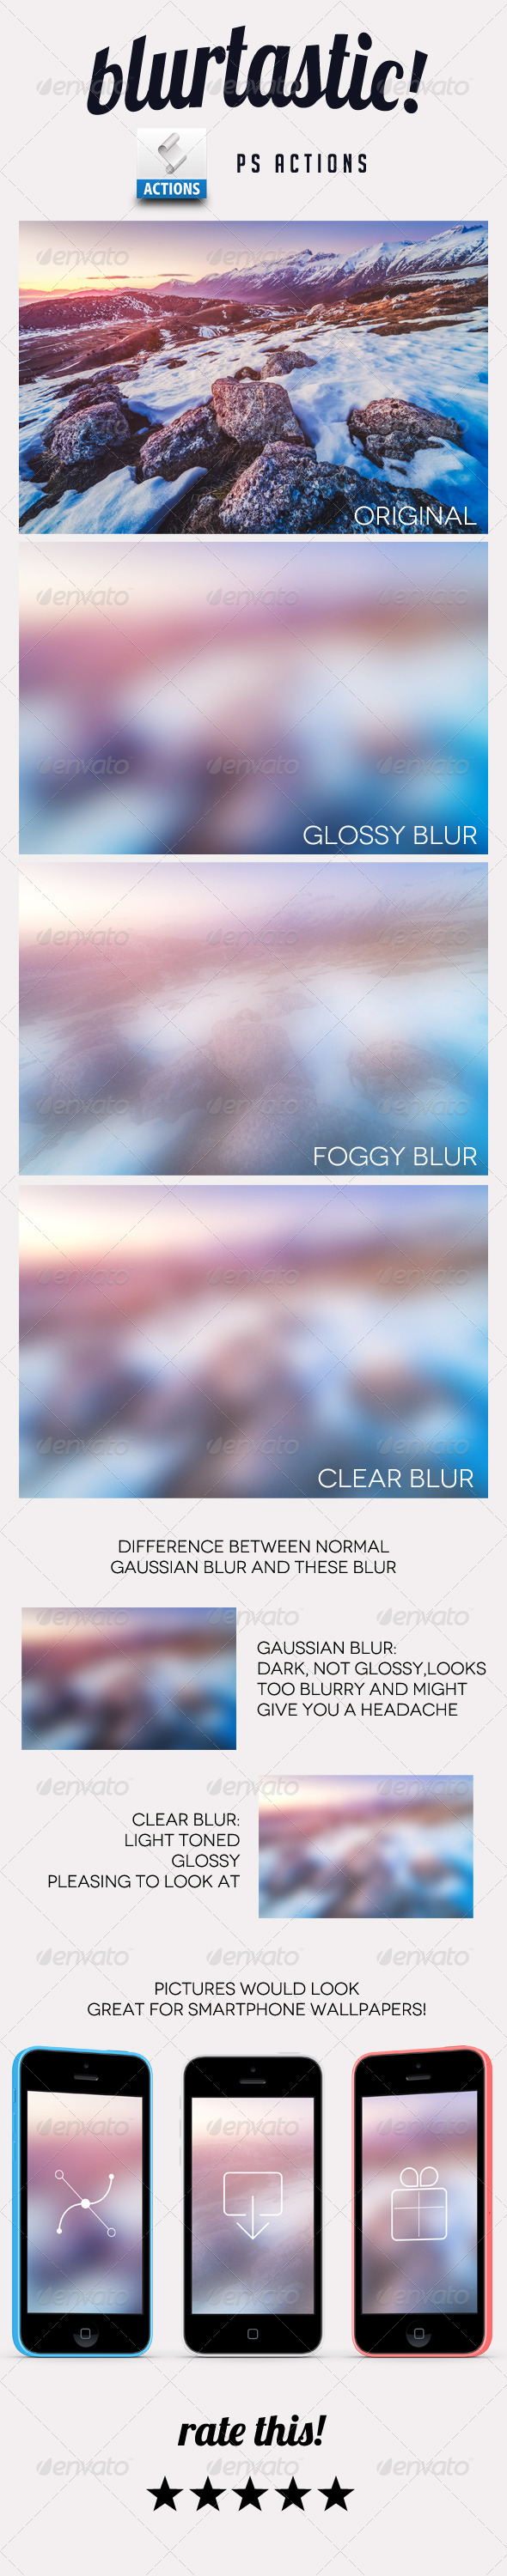 GraphicRiver Blurtastic Photoshop Actions 6916158